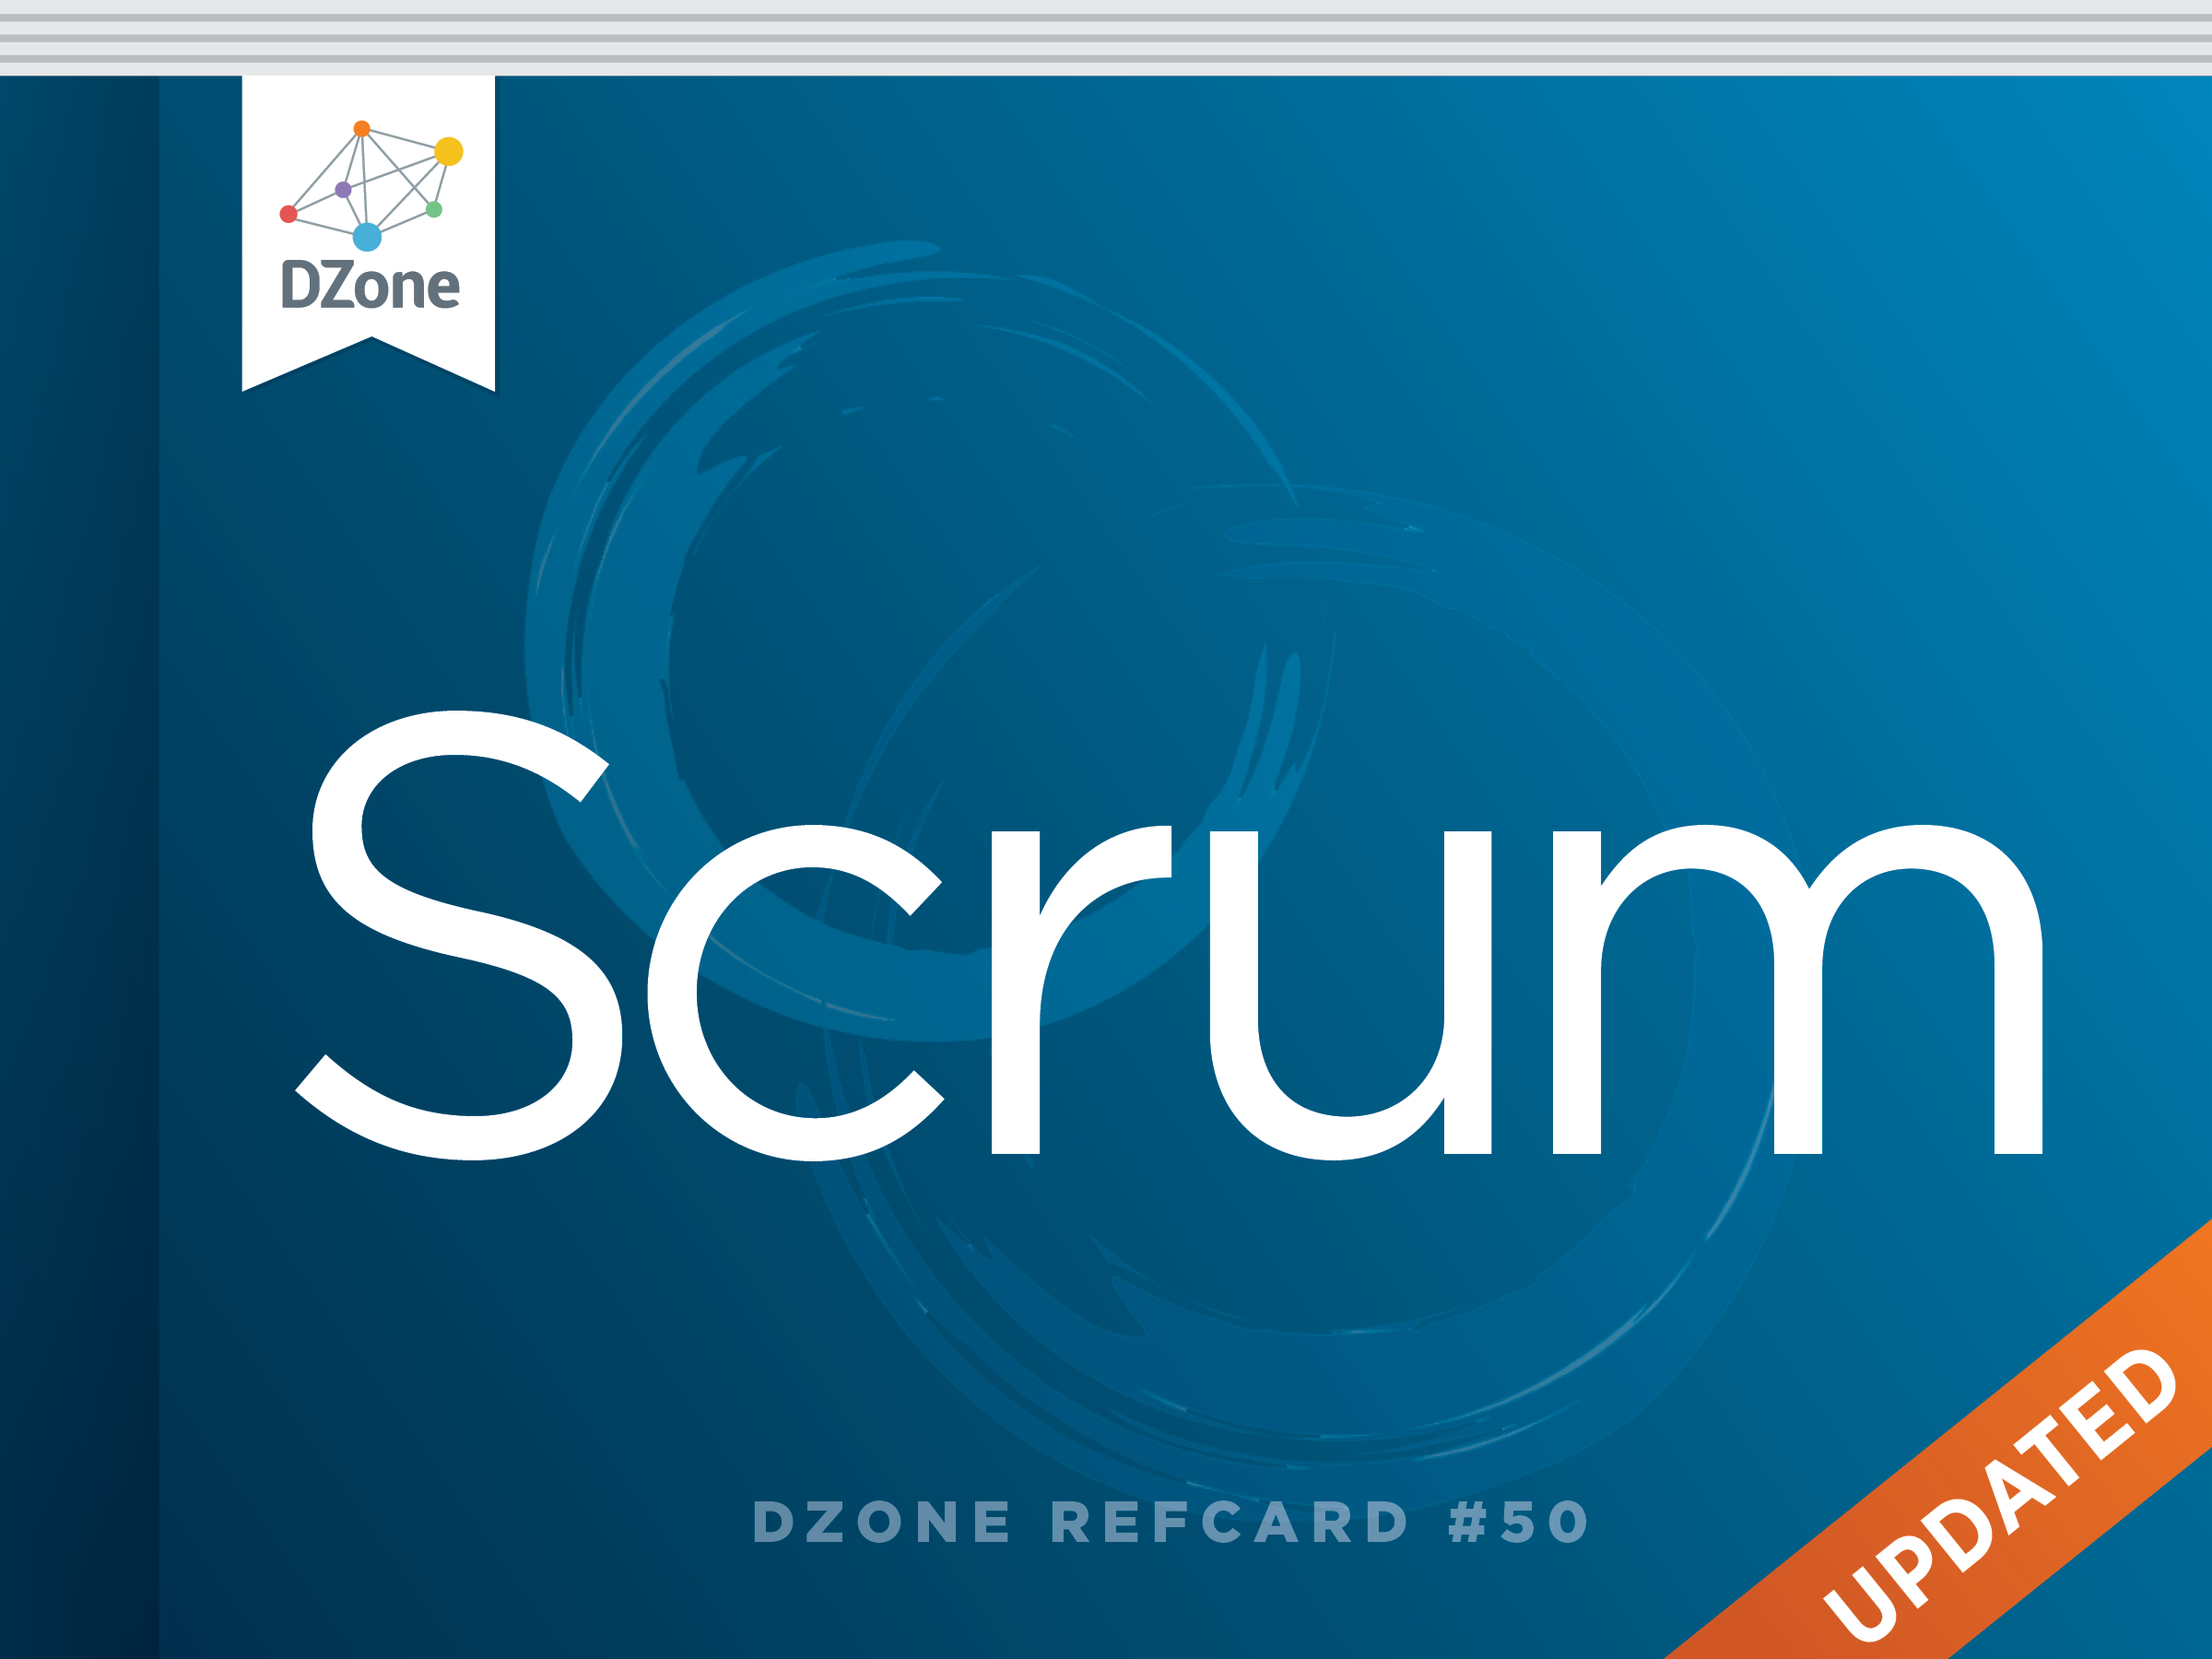 DZone Scrum reference card logo